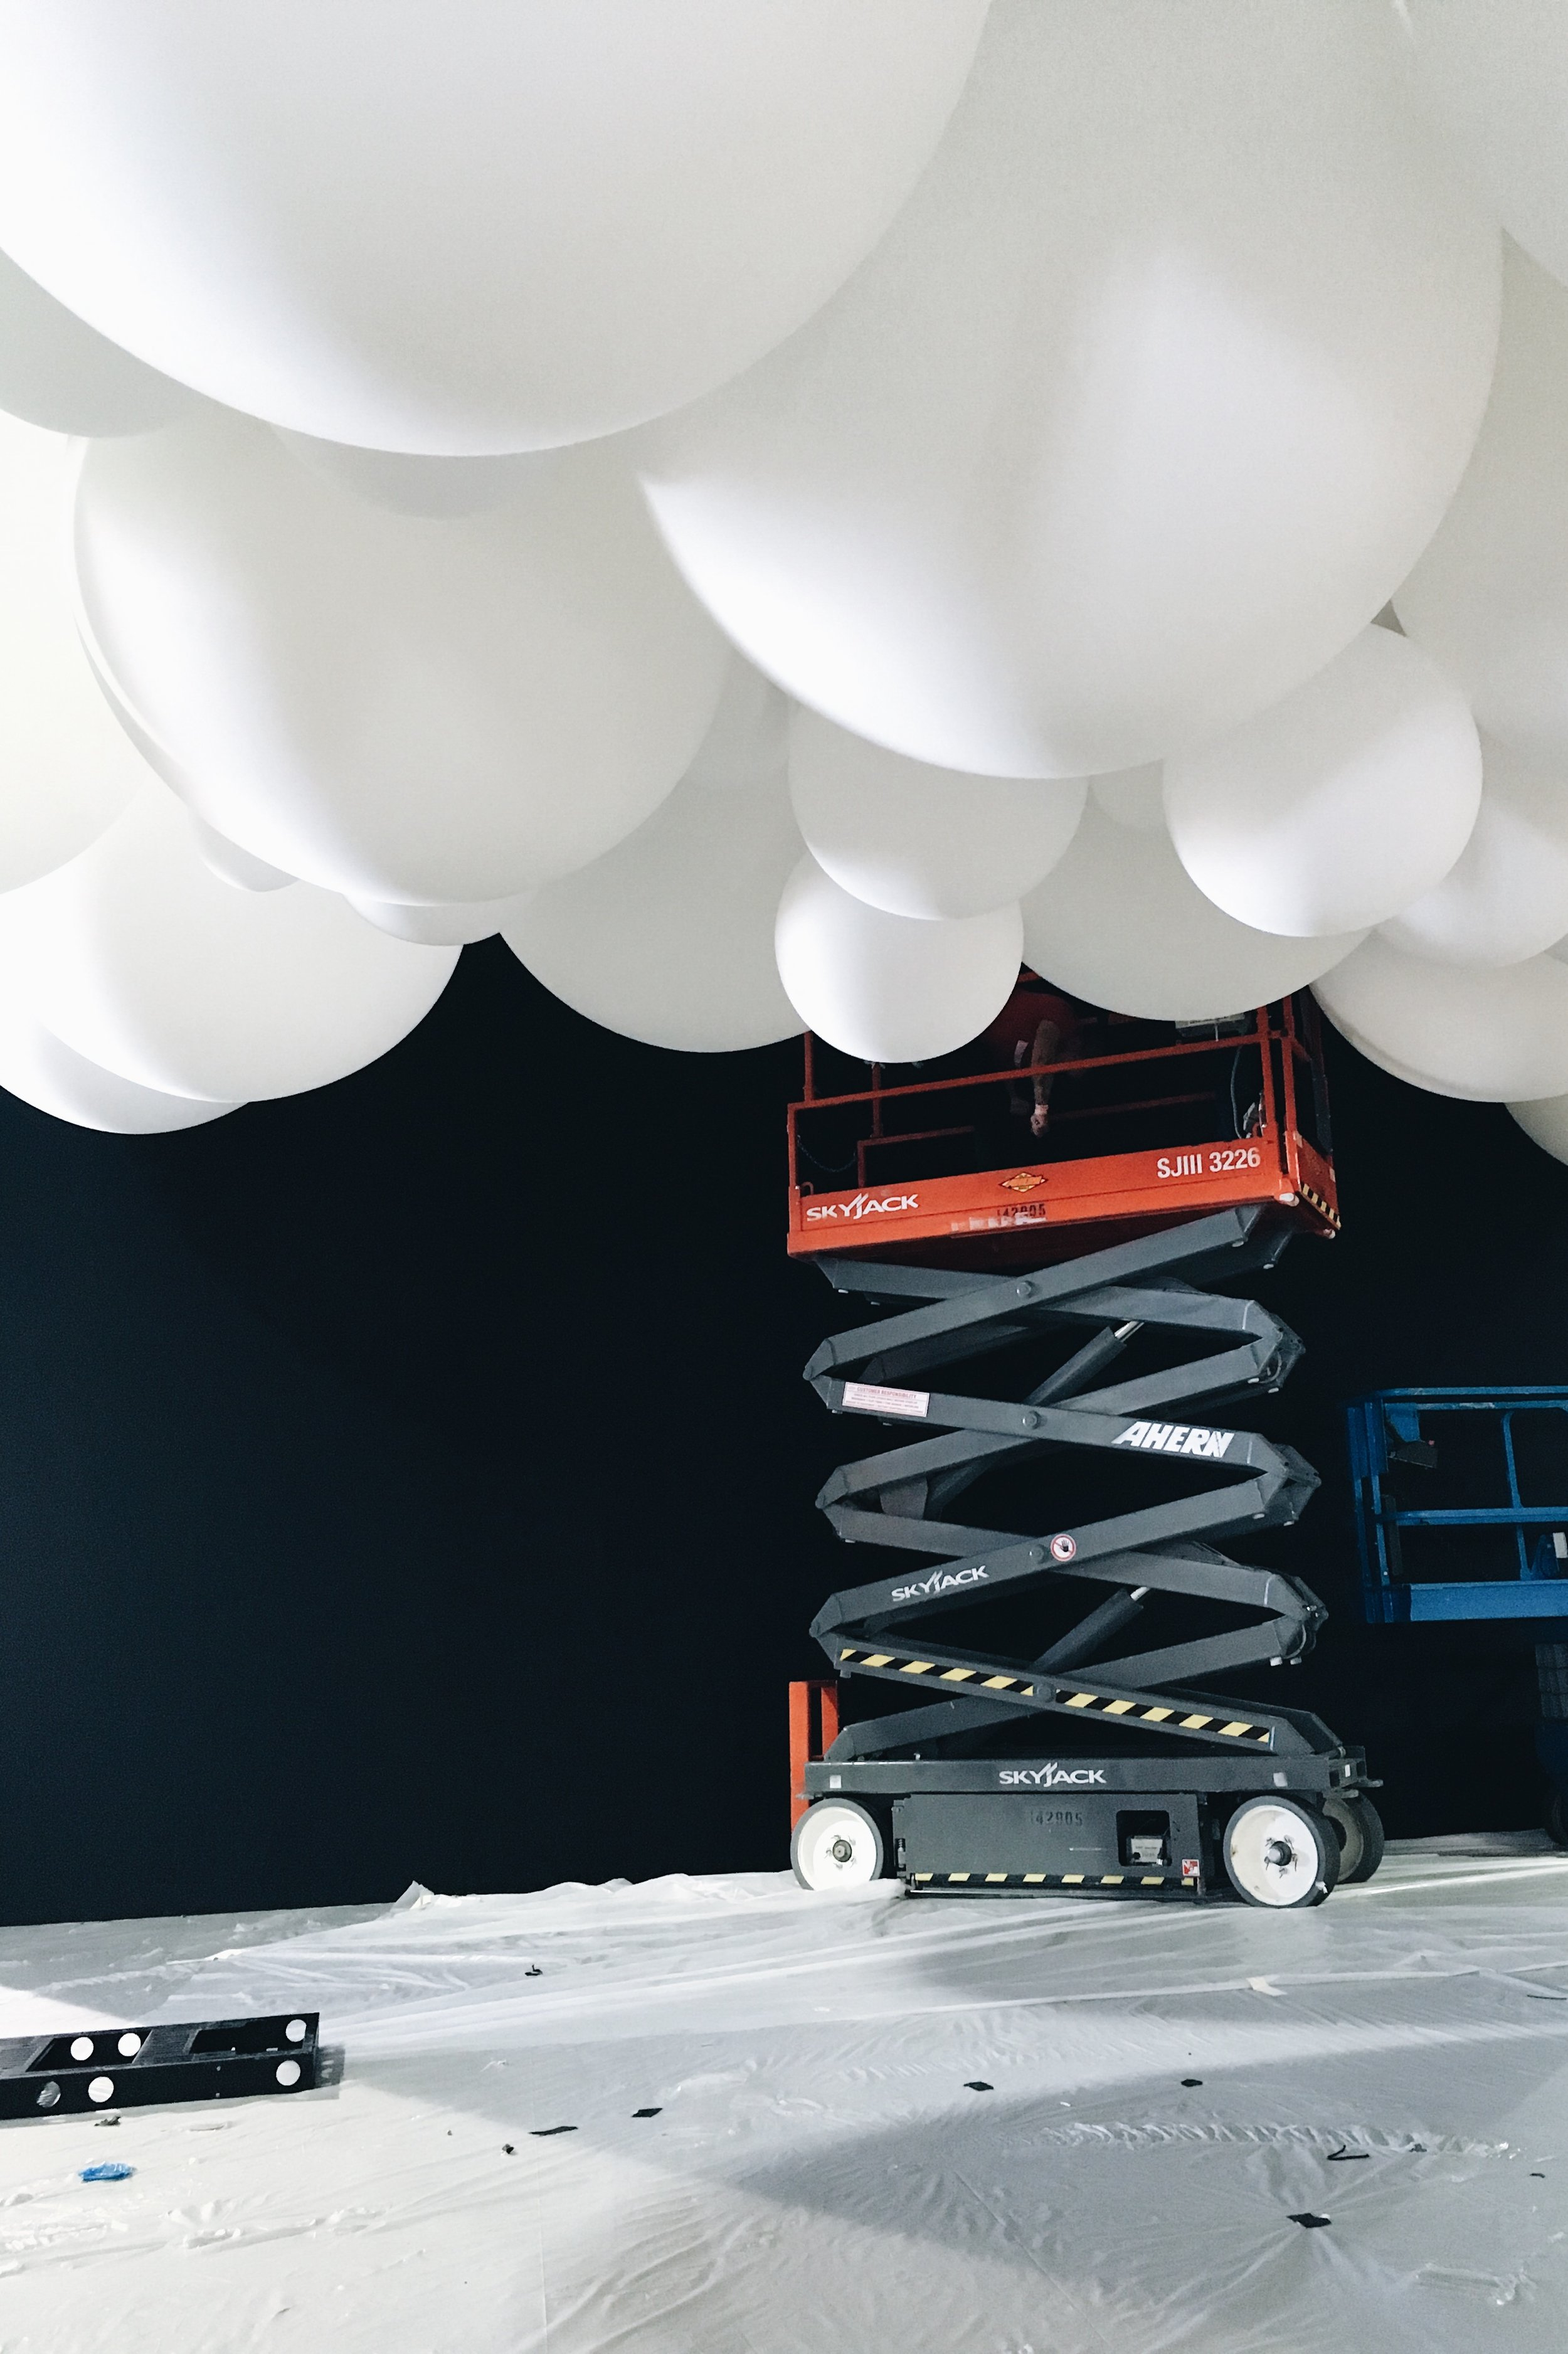 Riggers on the scissor lift filling in balloons after the truss was brought to trim height.